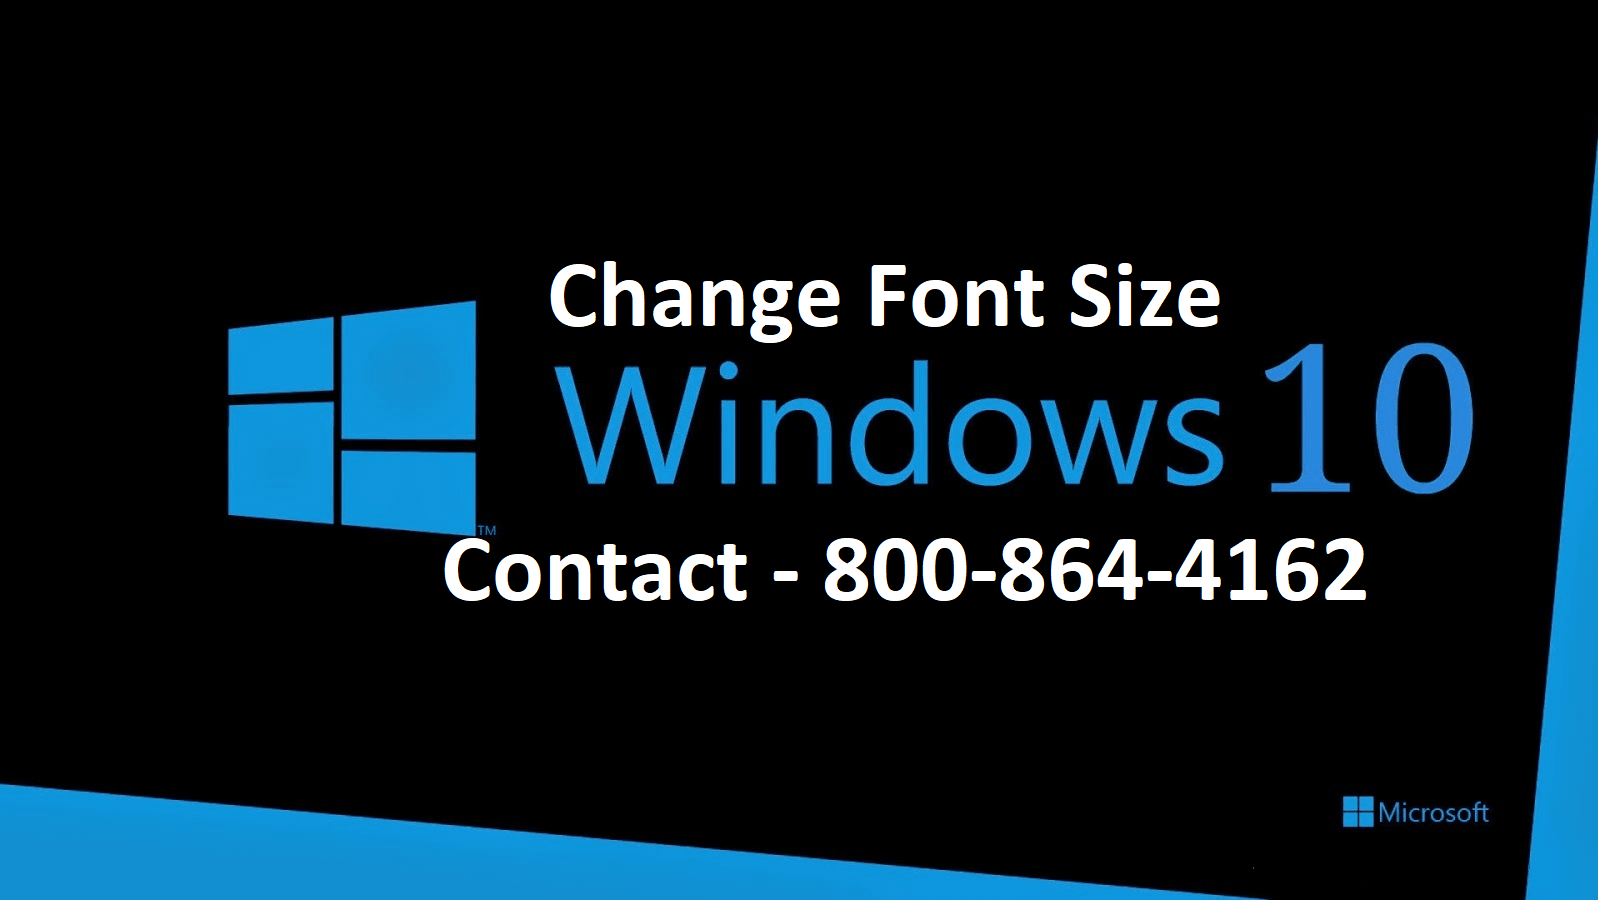 Change Font Size Windows 10 Contact Support Number 800